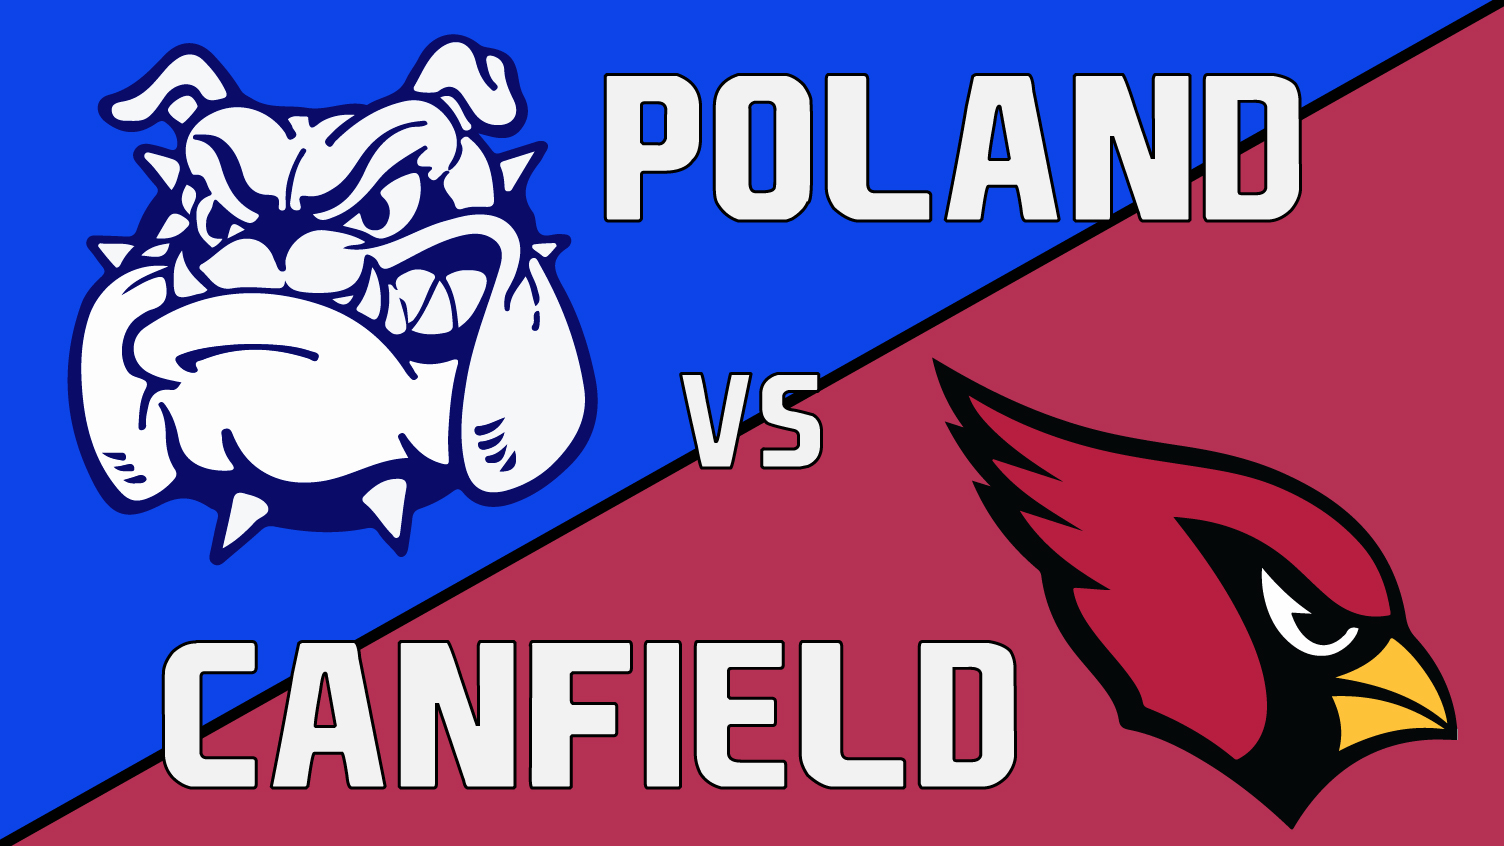 Poland vs. Canfield